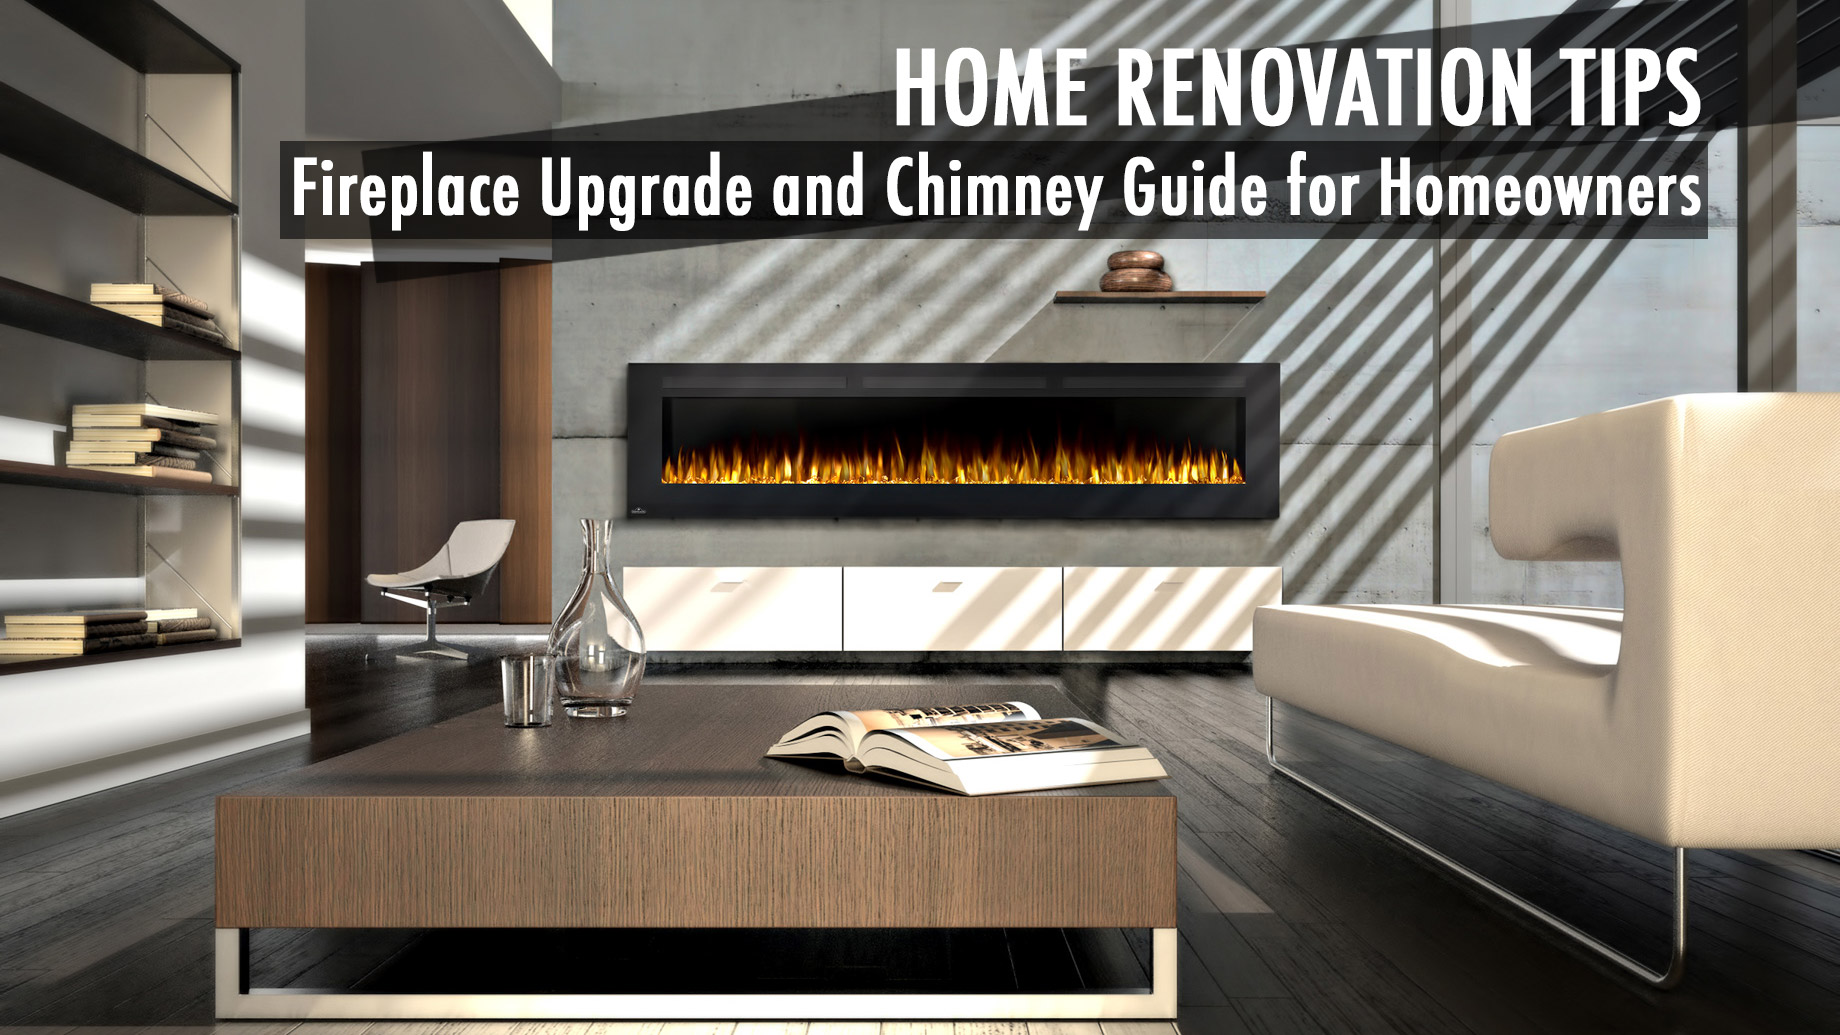 Home Renovation Tips - Fireplace Upgrade and Chimney Guide for Homeowners